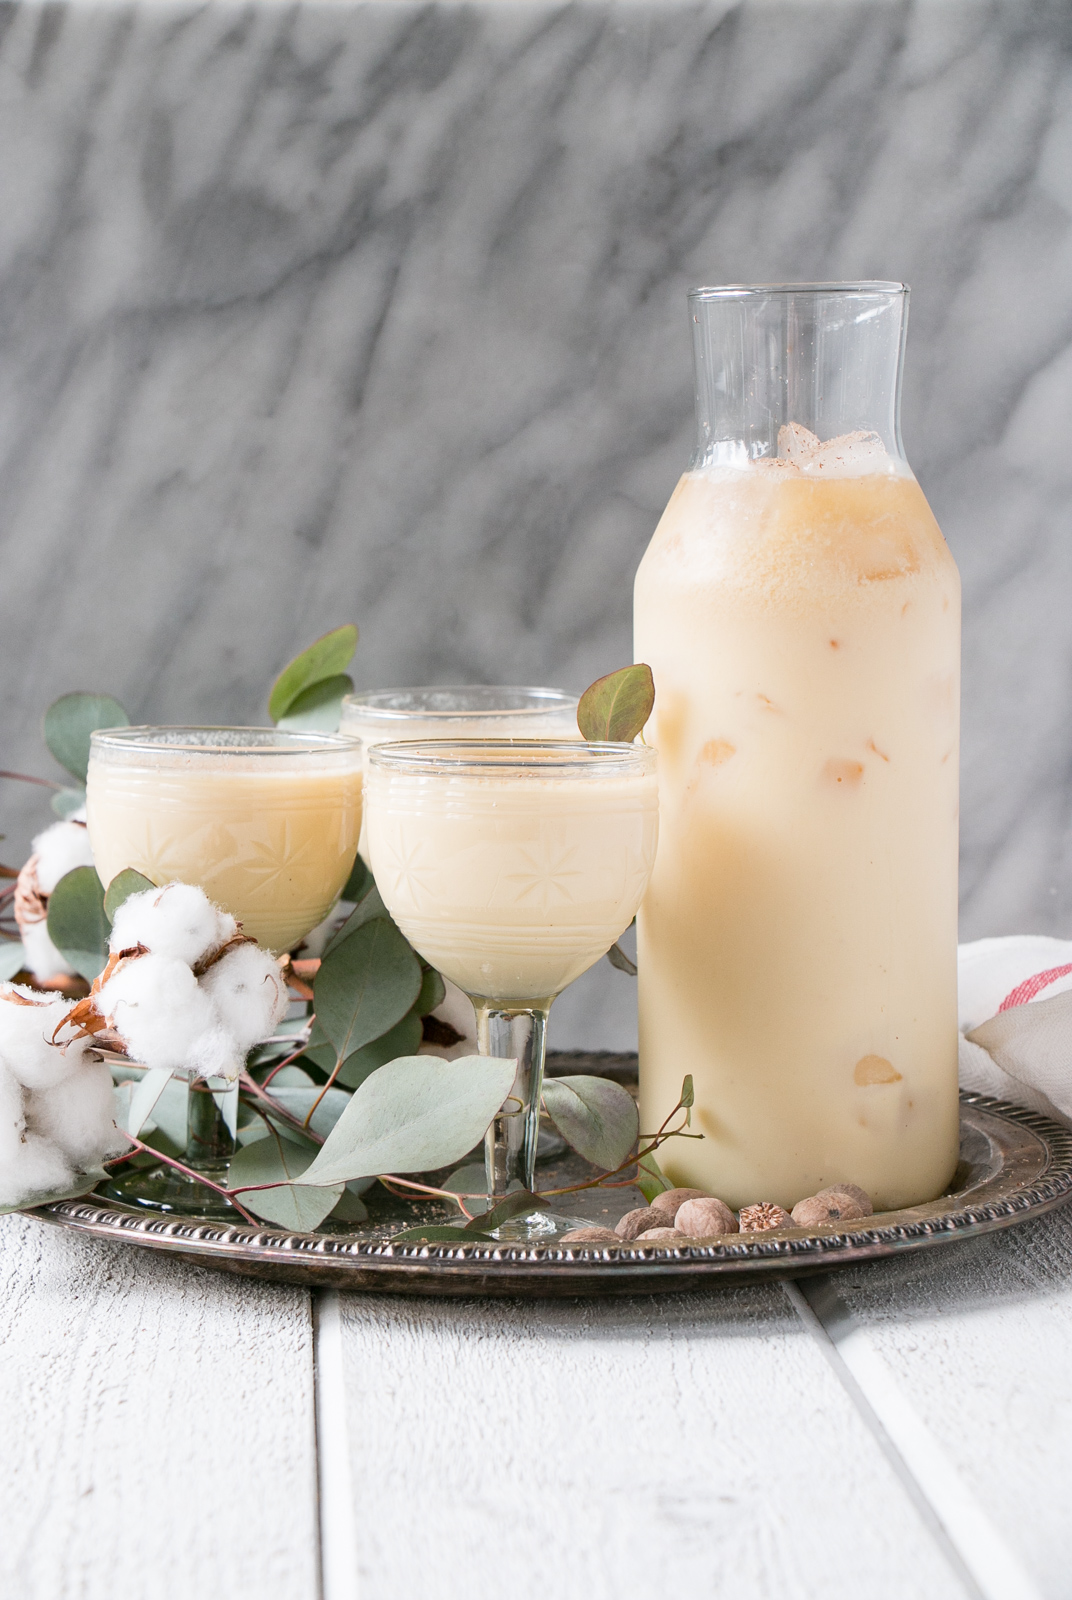 Easy Bourbon Eggnog takes the classic eggnog cocktail and adds the right level of spice and warmth. Top with nutmeg and cinnamon for an indulgent and festive cocktail! #eggnog #cocktail